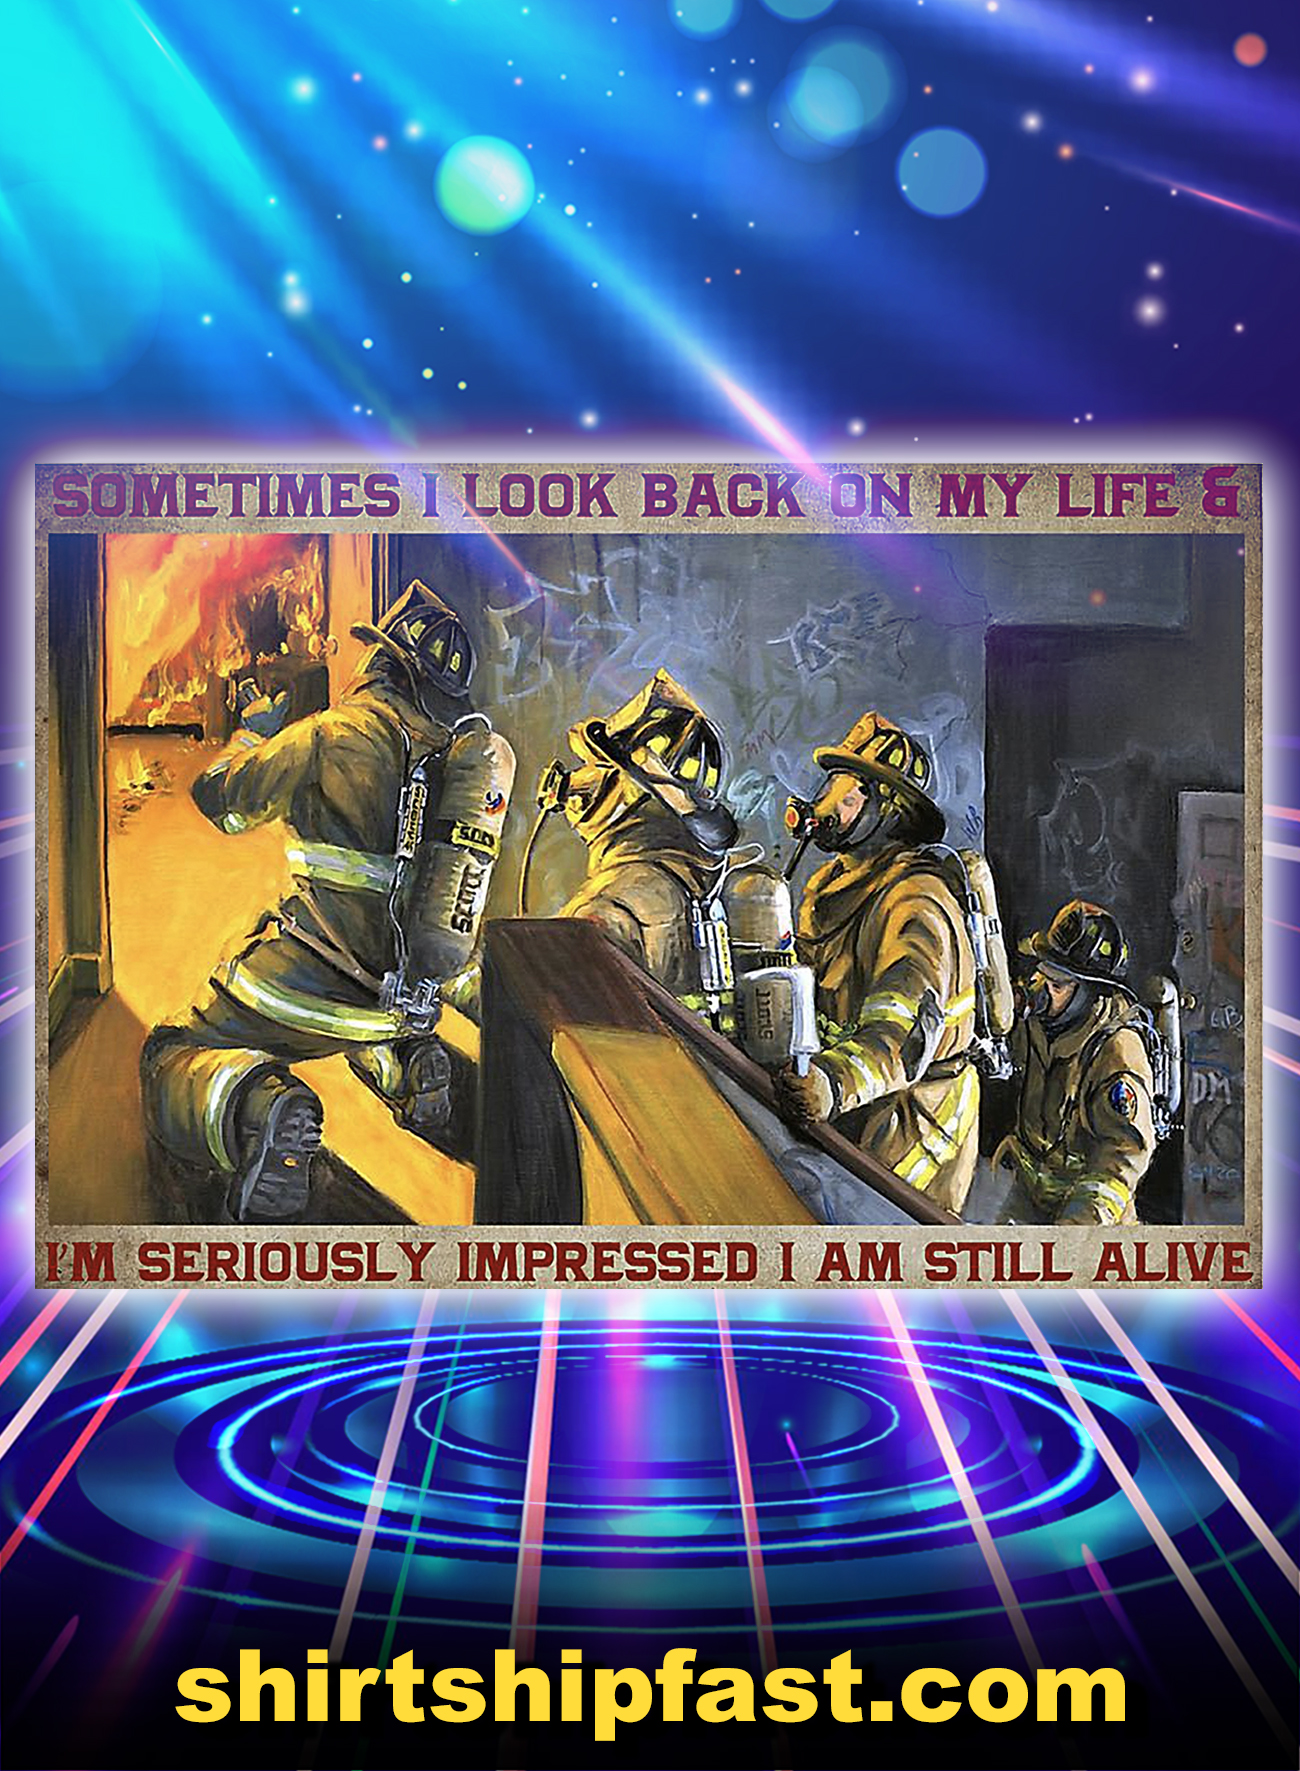 Firefighter sometimes i look back on my life poster - A4